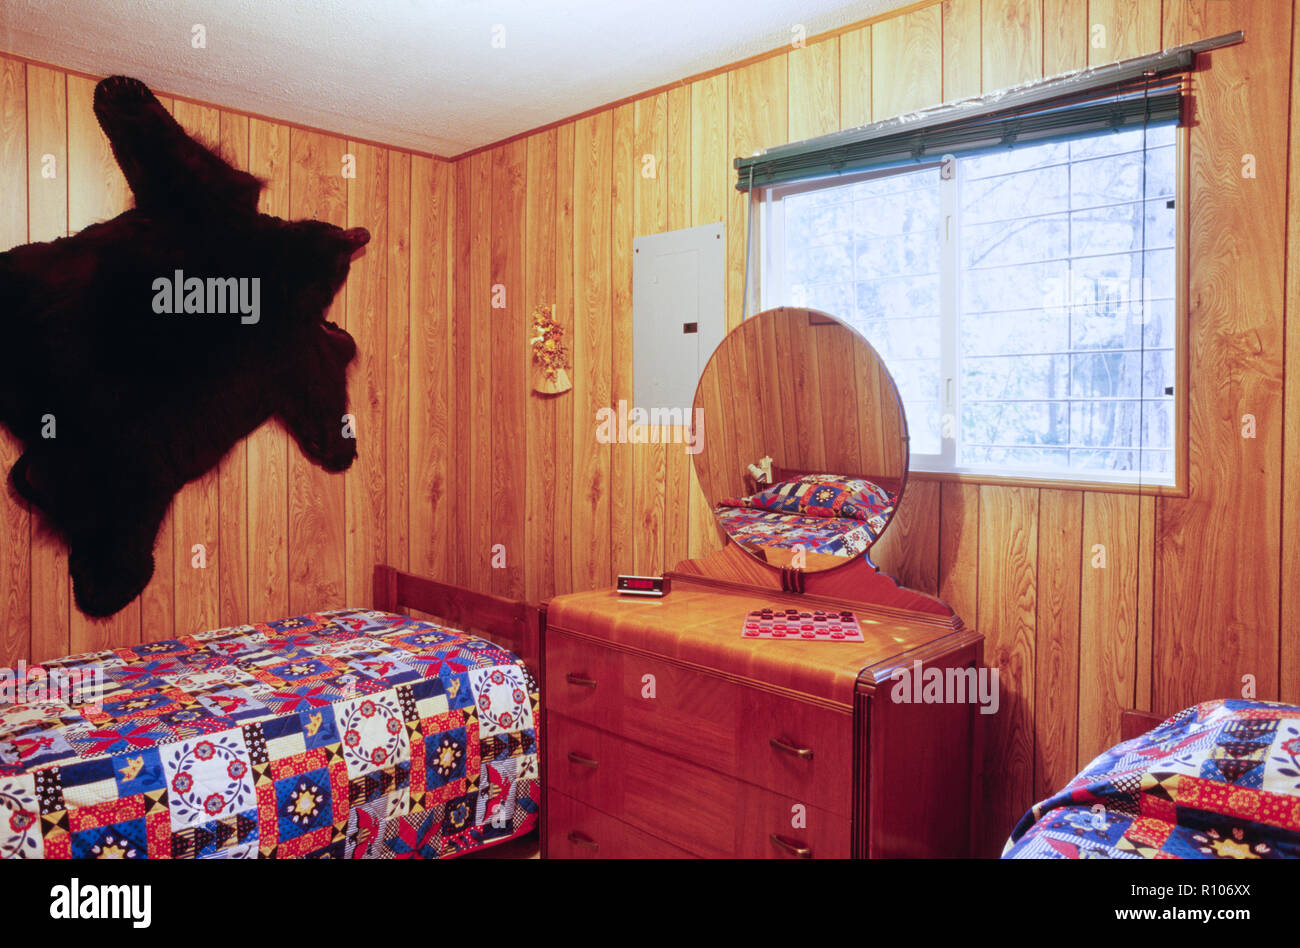 Rustic Cabin Bedroom with a Bear Skin on the wall, SD, USA - Stock Image